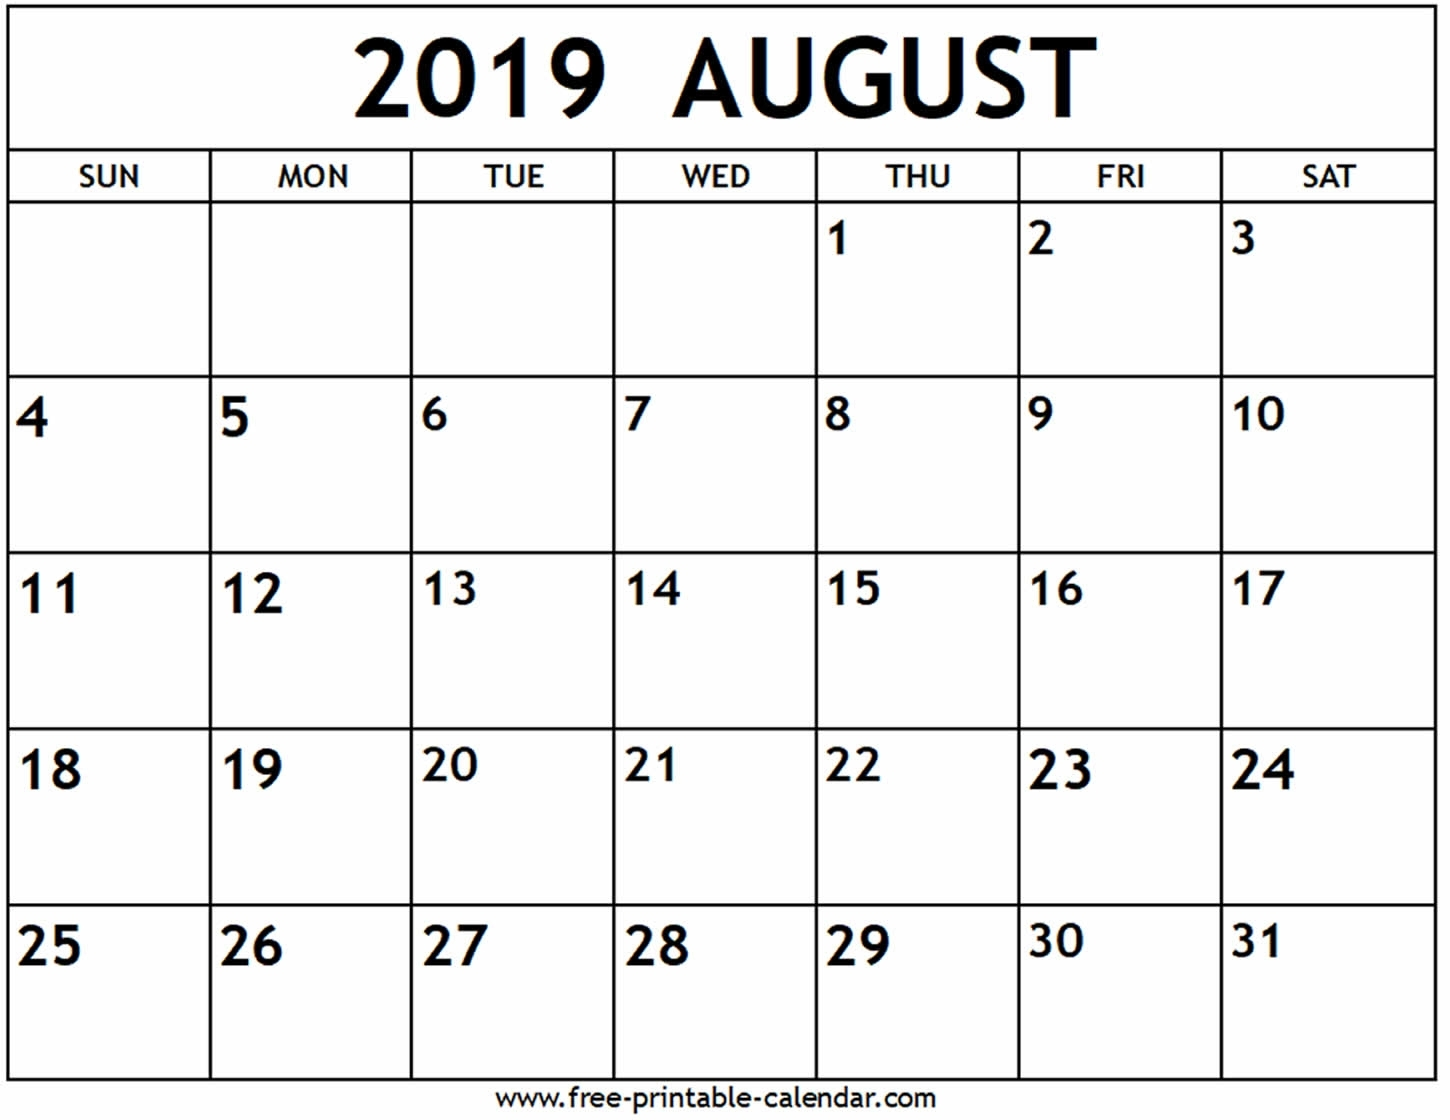 August 2019 Calendar - Free-Printable-Calendar throughout Numbers Free Printable Calendar For August